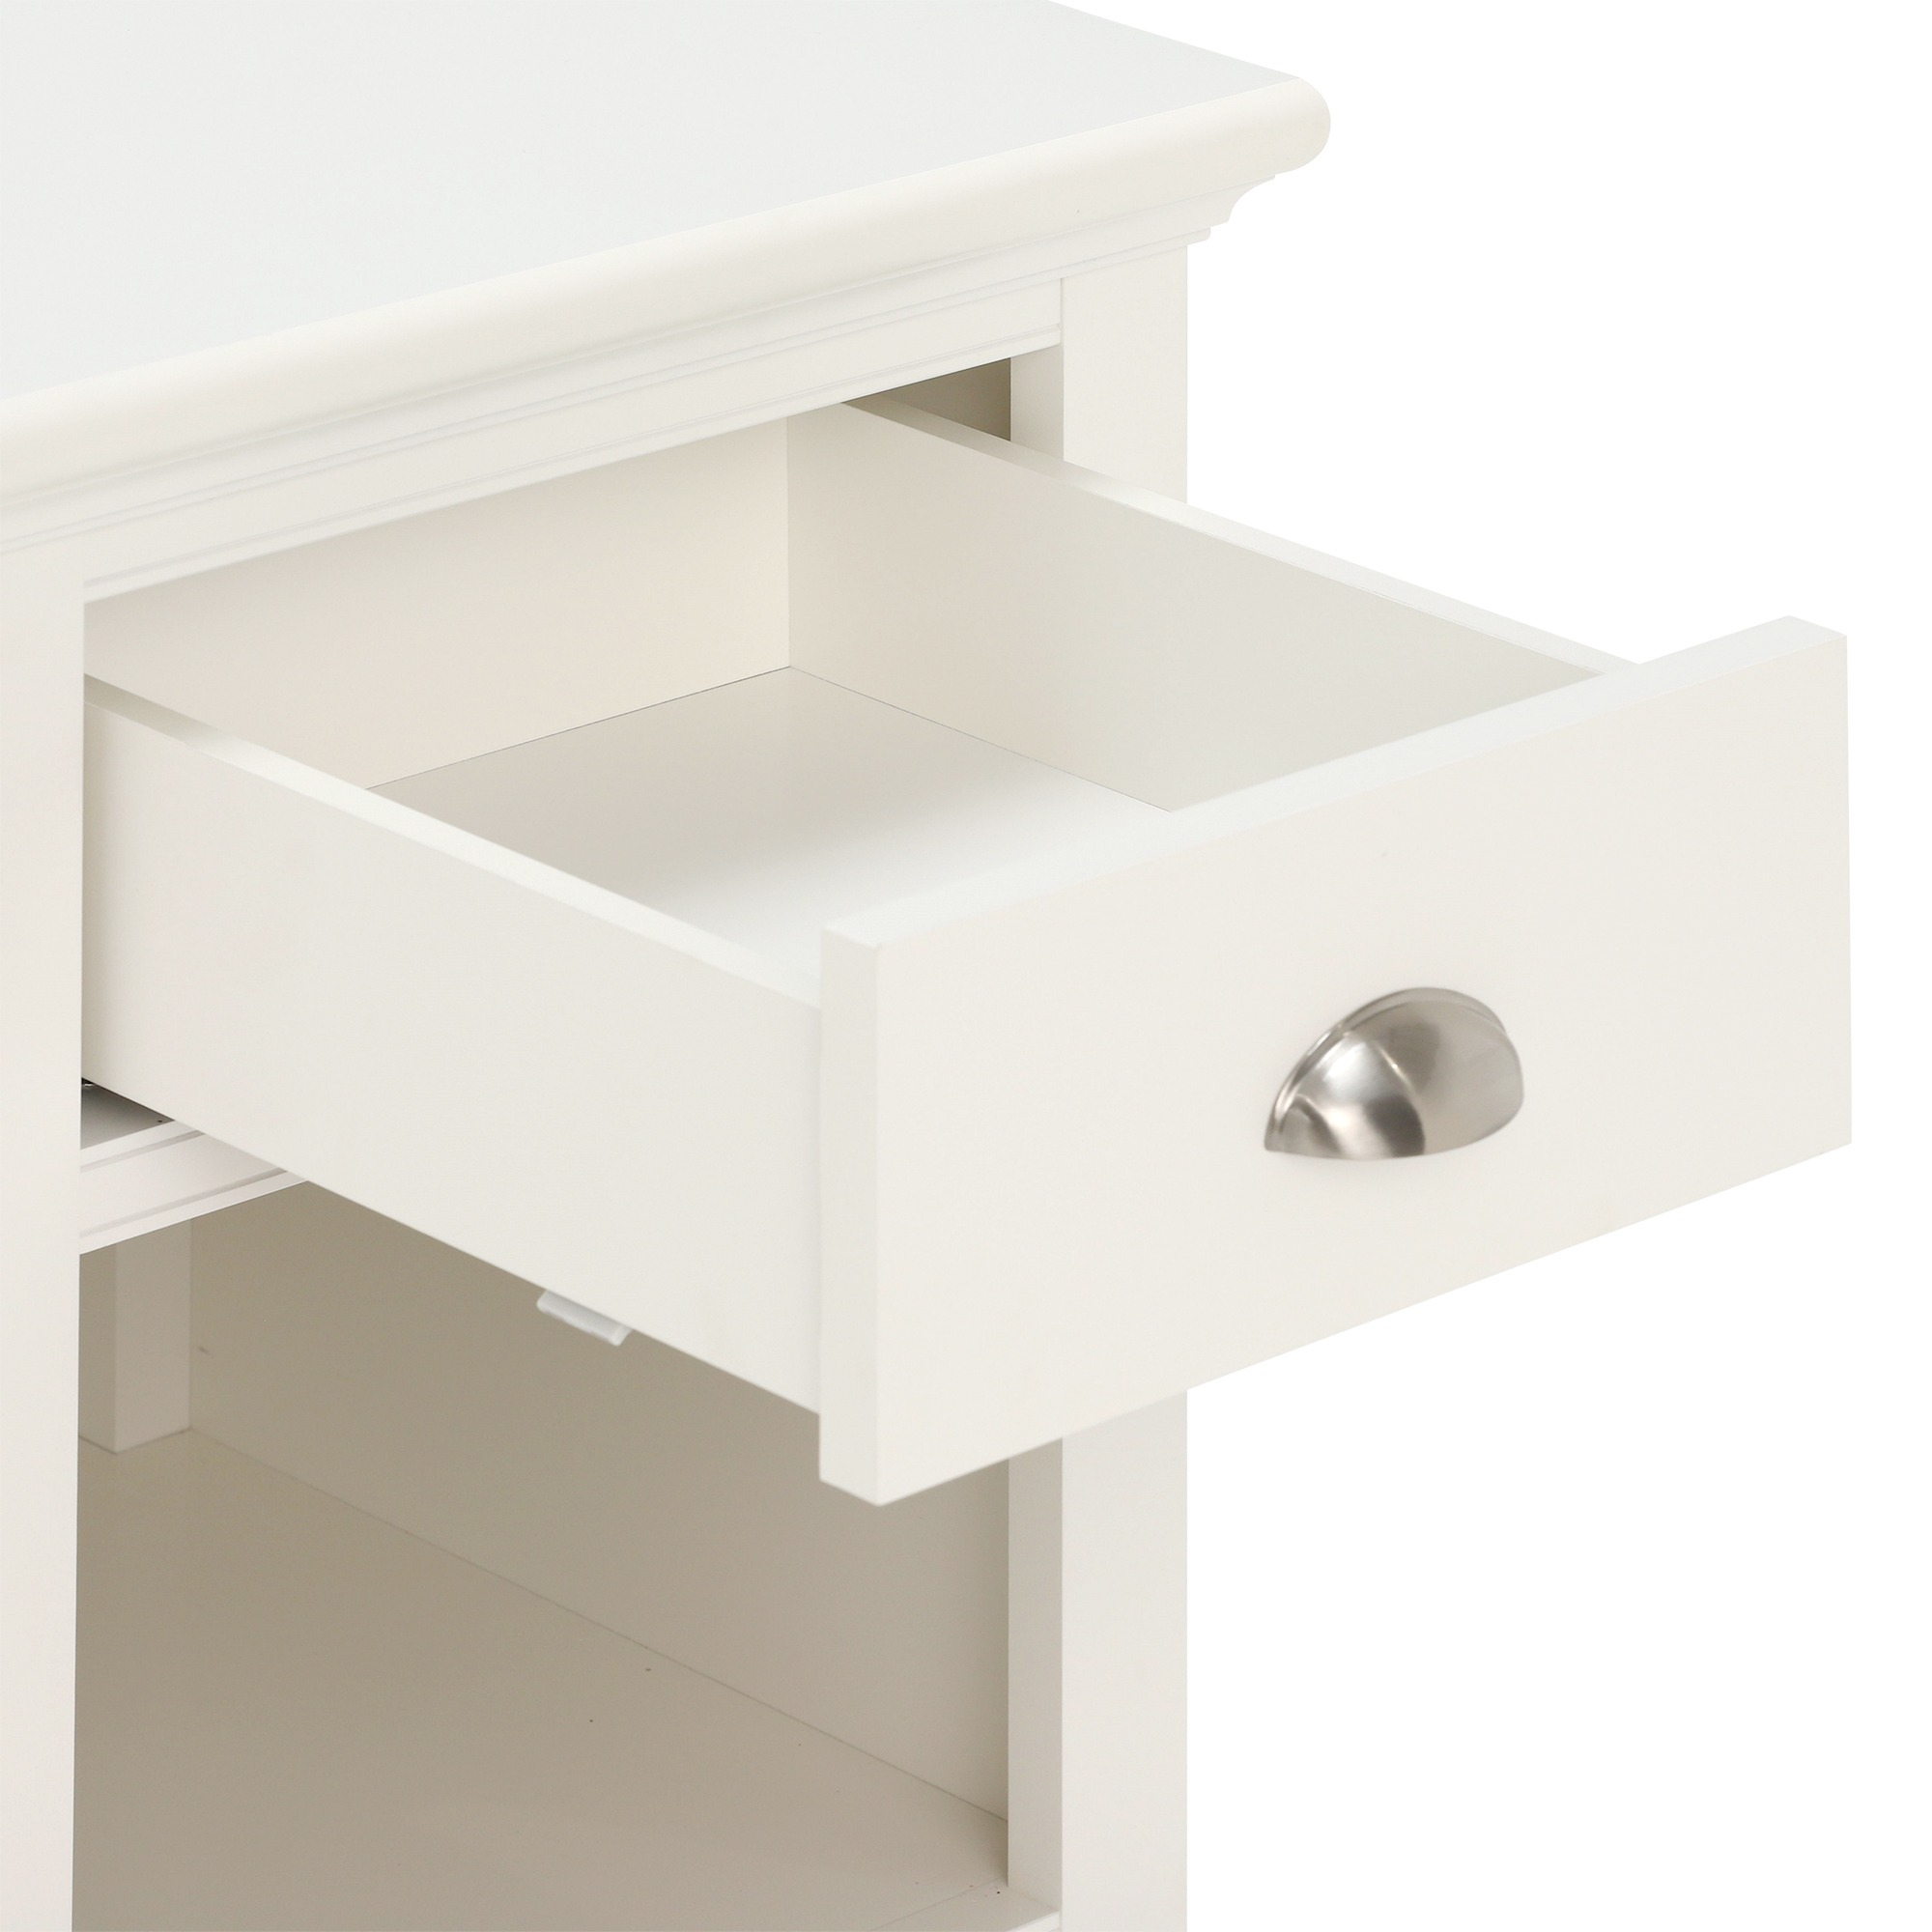 SOFT CLOSING DRAWERS DETAIL.